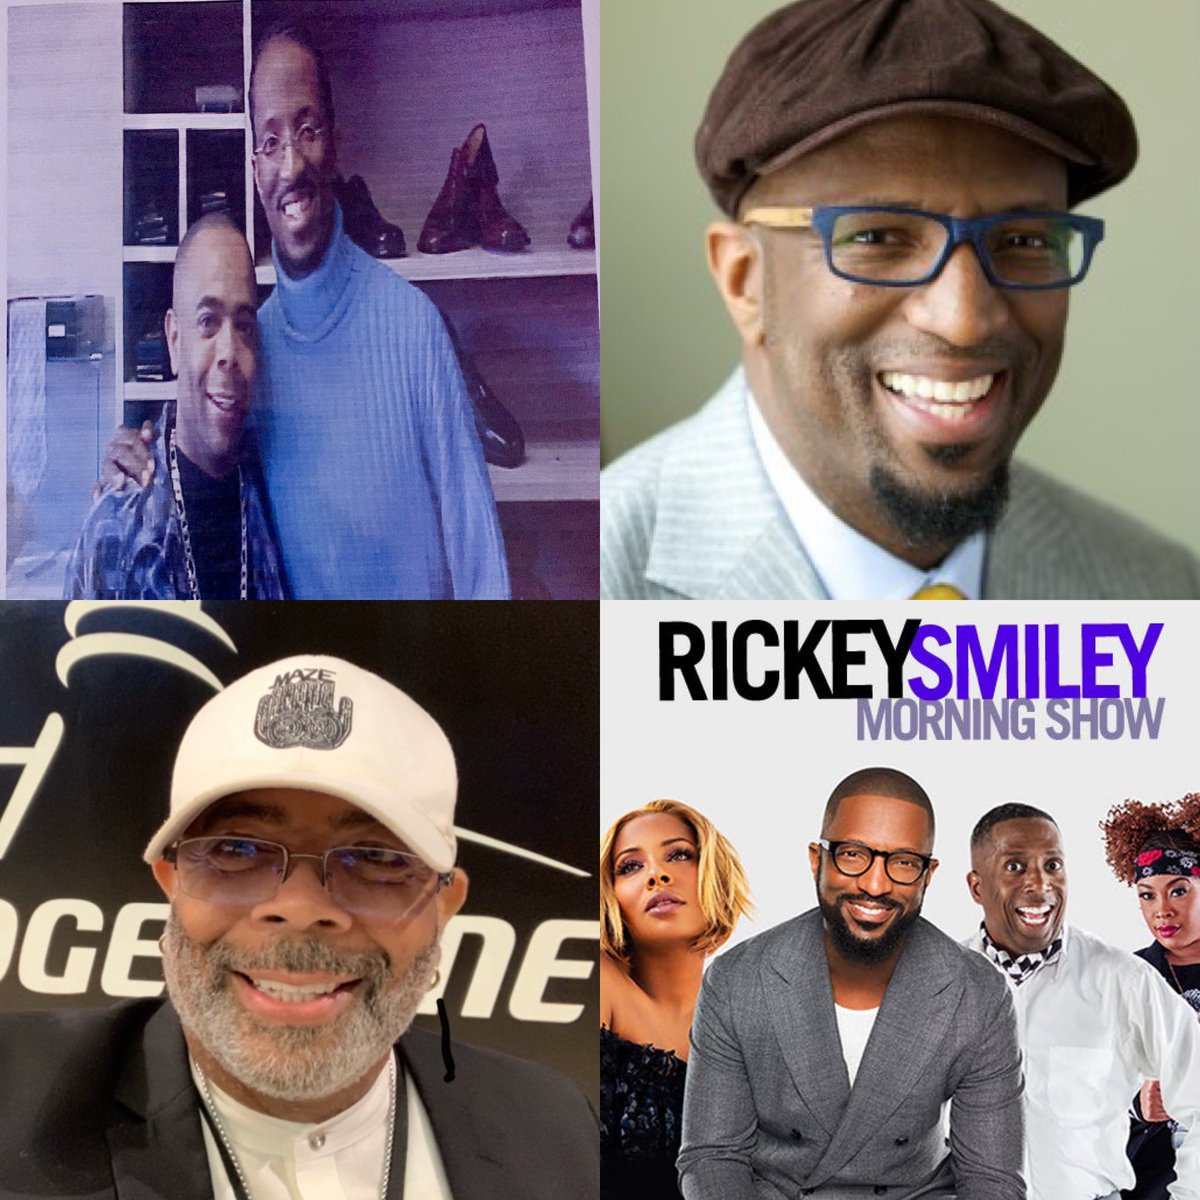 """""""Rickey Smiley"""" Comedian, Radio Personality, TV Host, Actor George Willis Jr., CEO. Willis Music Group & Net Work  You can have more because you can become more!  #RickeySmiley #Miguel #Atlanta #WillisMusicGroup #Skeet #Love #GeorgeWillisJr #Instagood #RickySmileyMorningShow"""